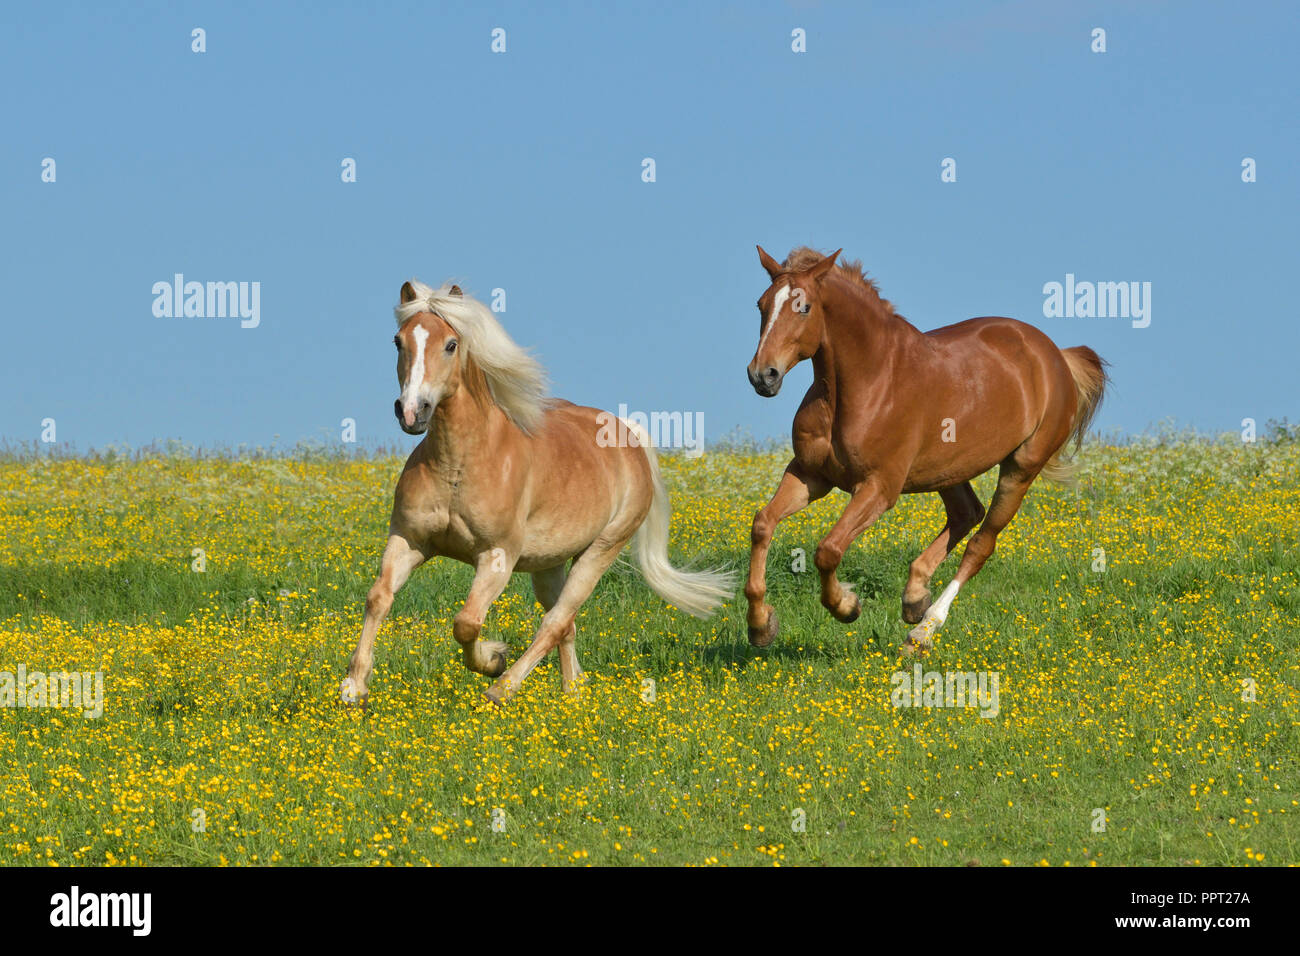 Two horses galloping in the field Stock Photo